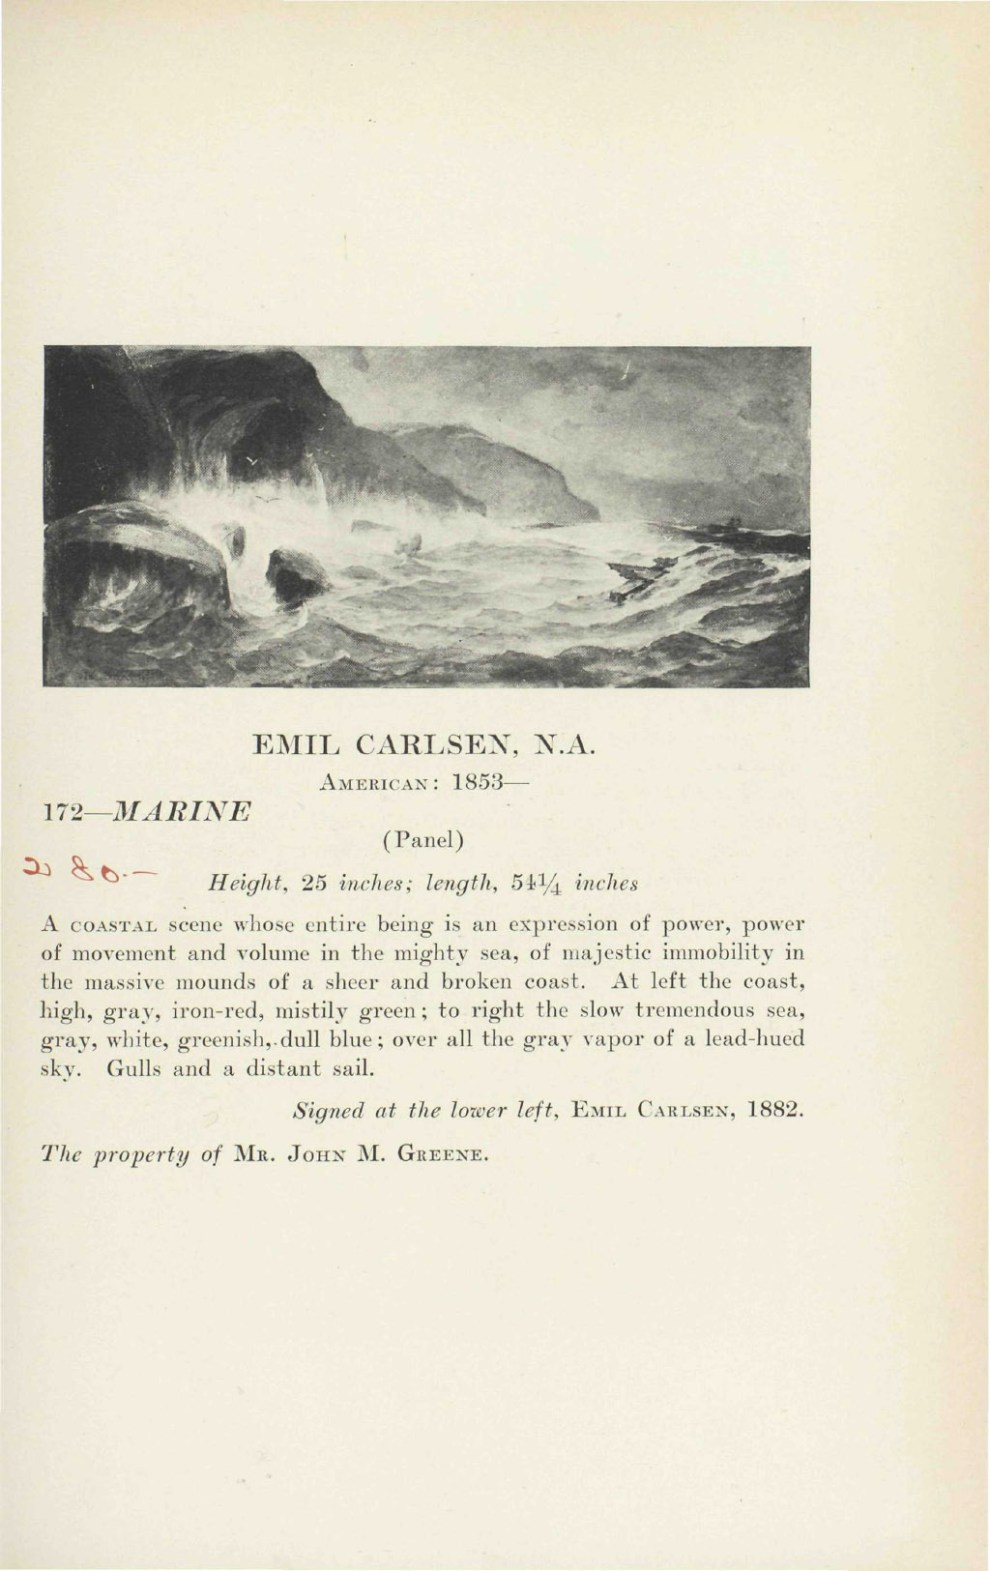 """1923 The American Art Galleries, Madison Square South, New York, NY, """"Foreign and American Oil Paintings Belonging to An Estate and Private Owners"""", November 14-15"""